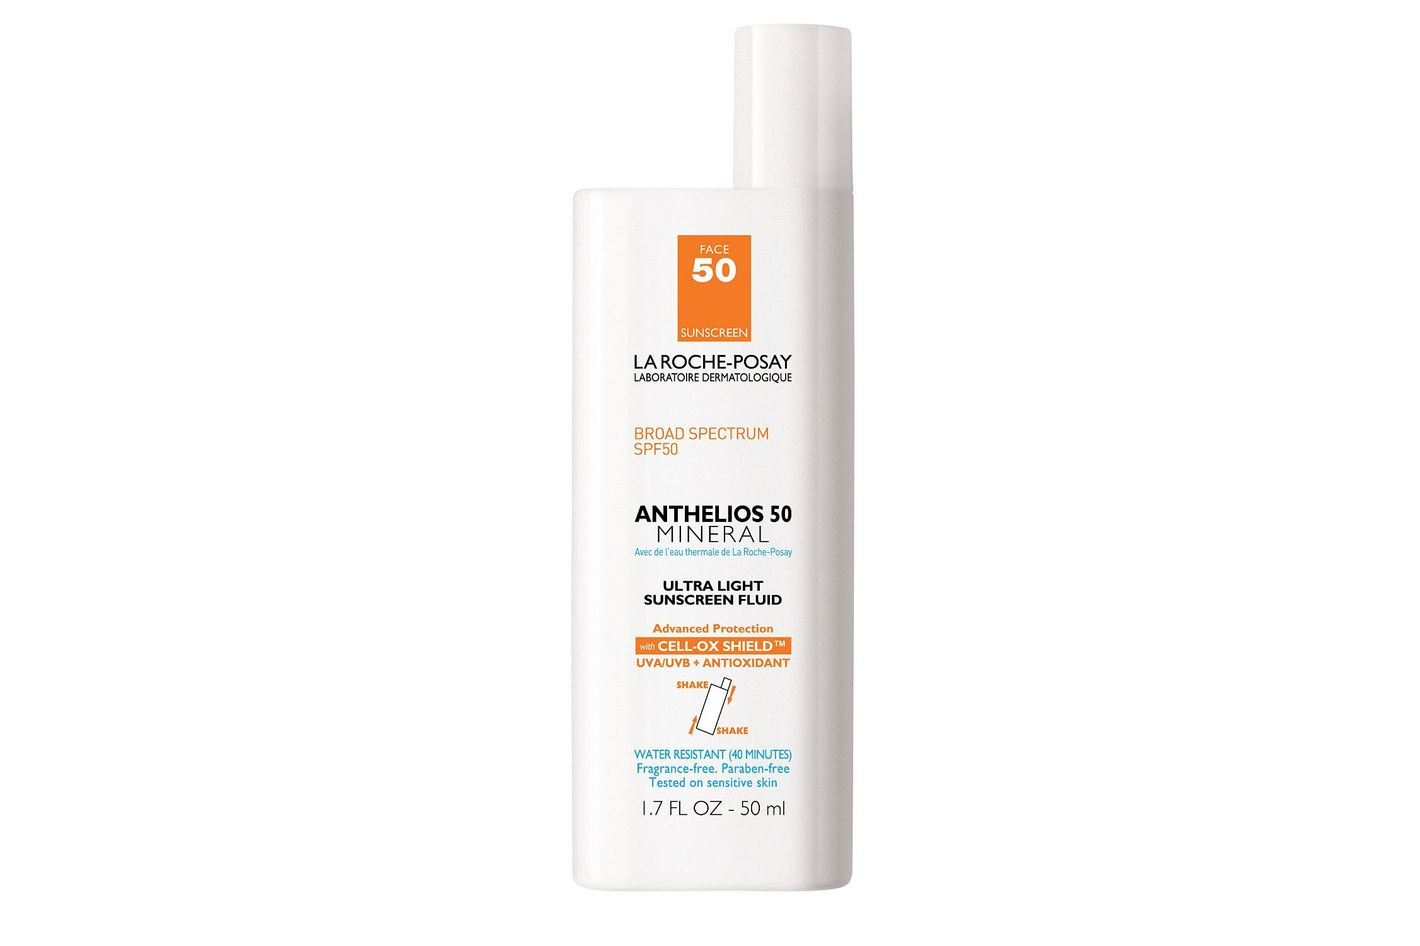 La Roche Posay Anthelios Sunscreen - Best French Beauty Products